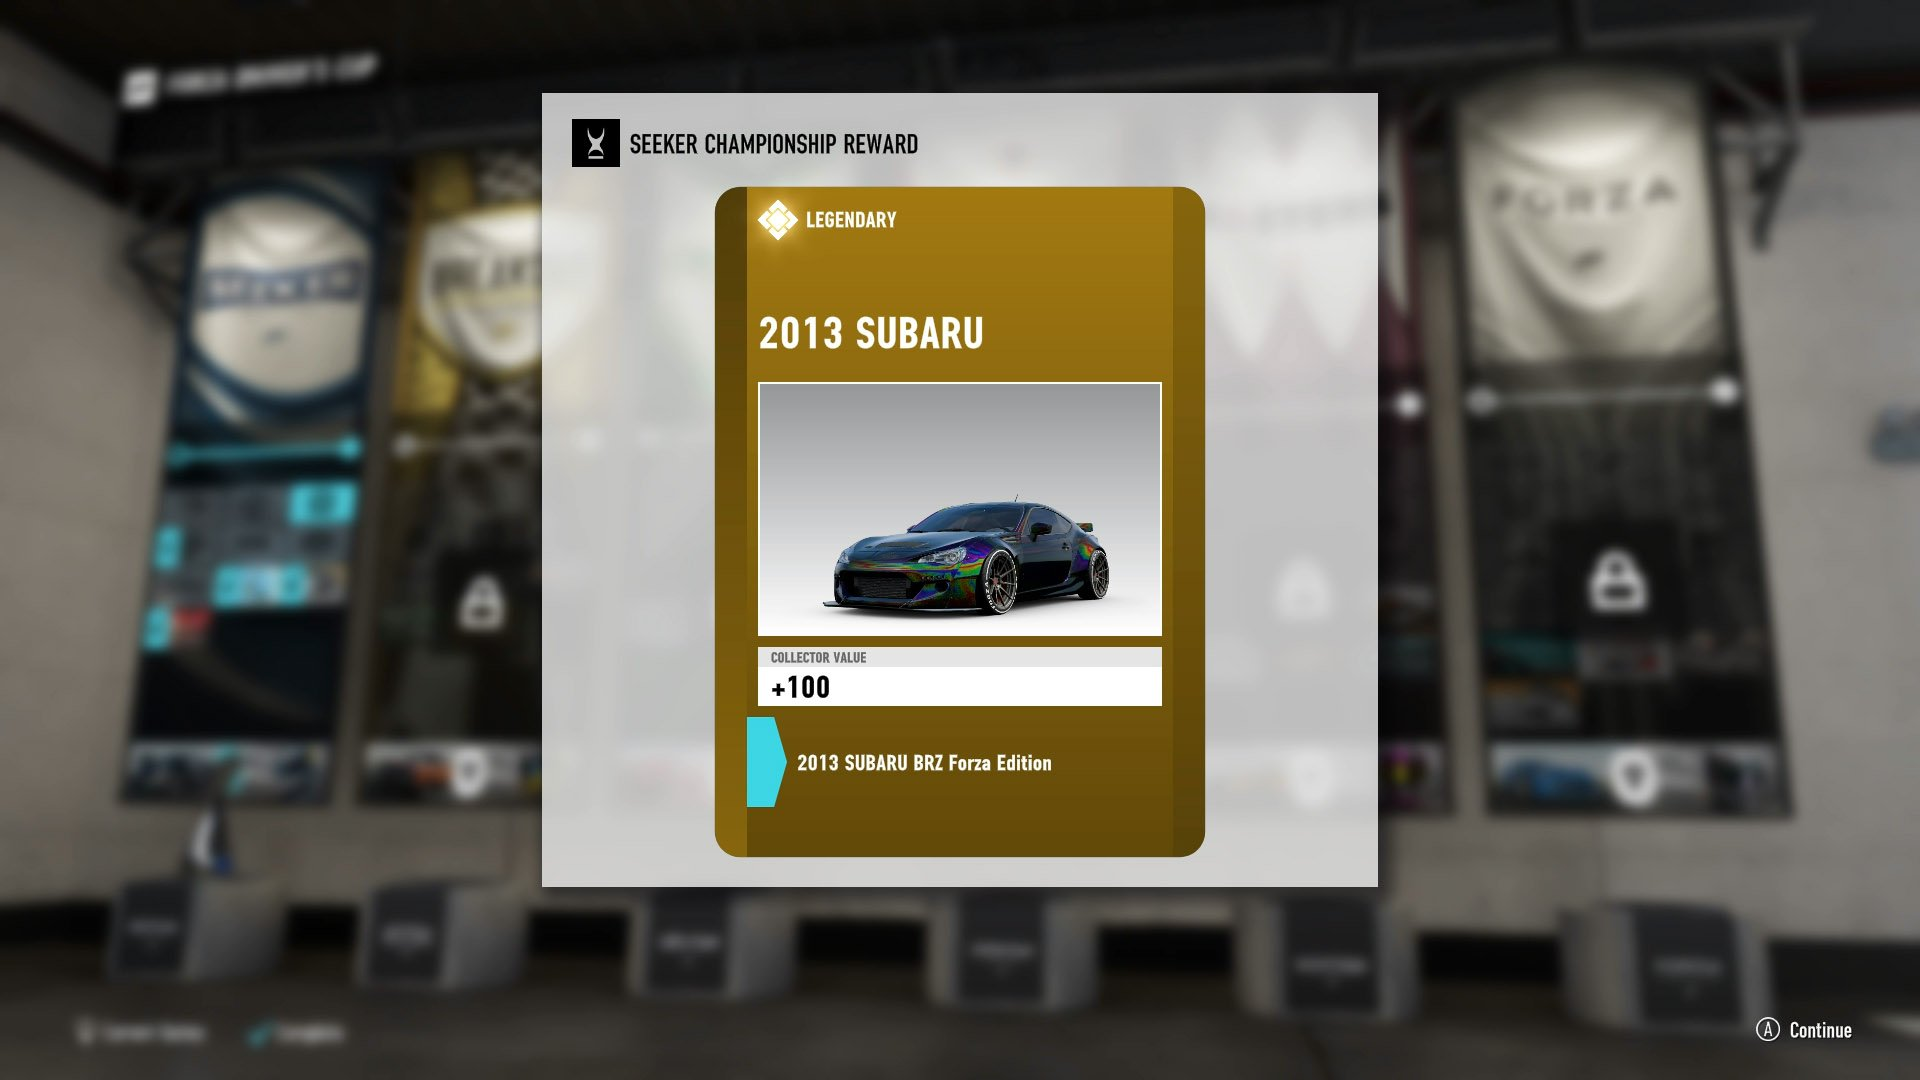 Purchase cars, and receive them as rewards, to increase the rarity of cars you can collect.